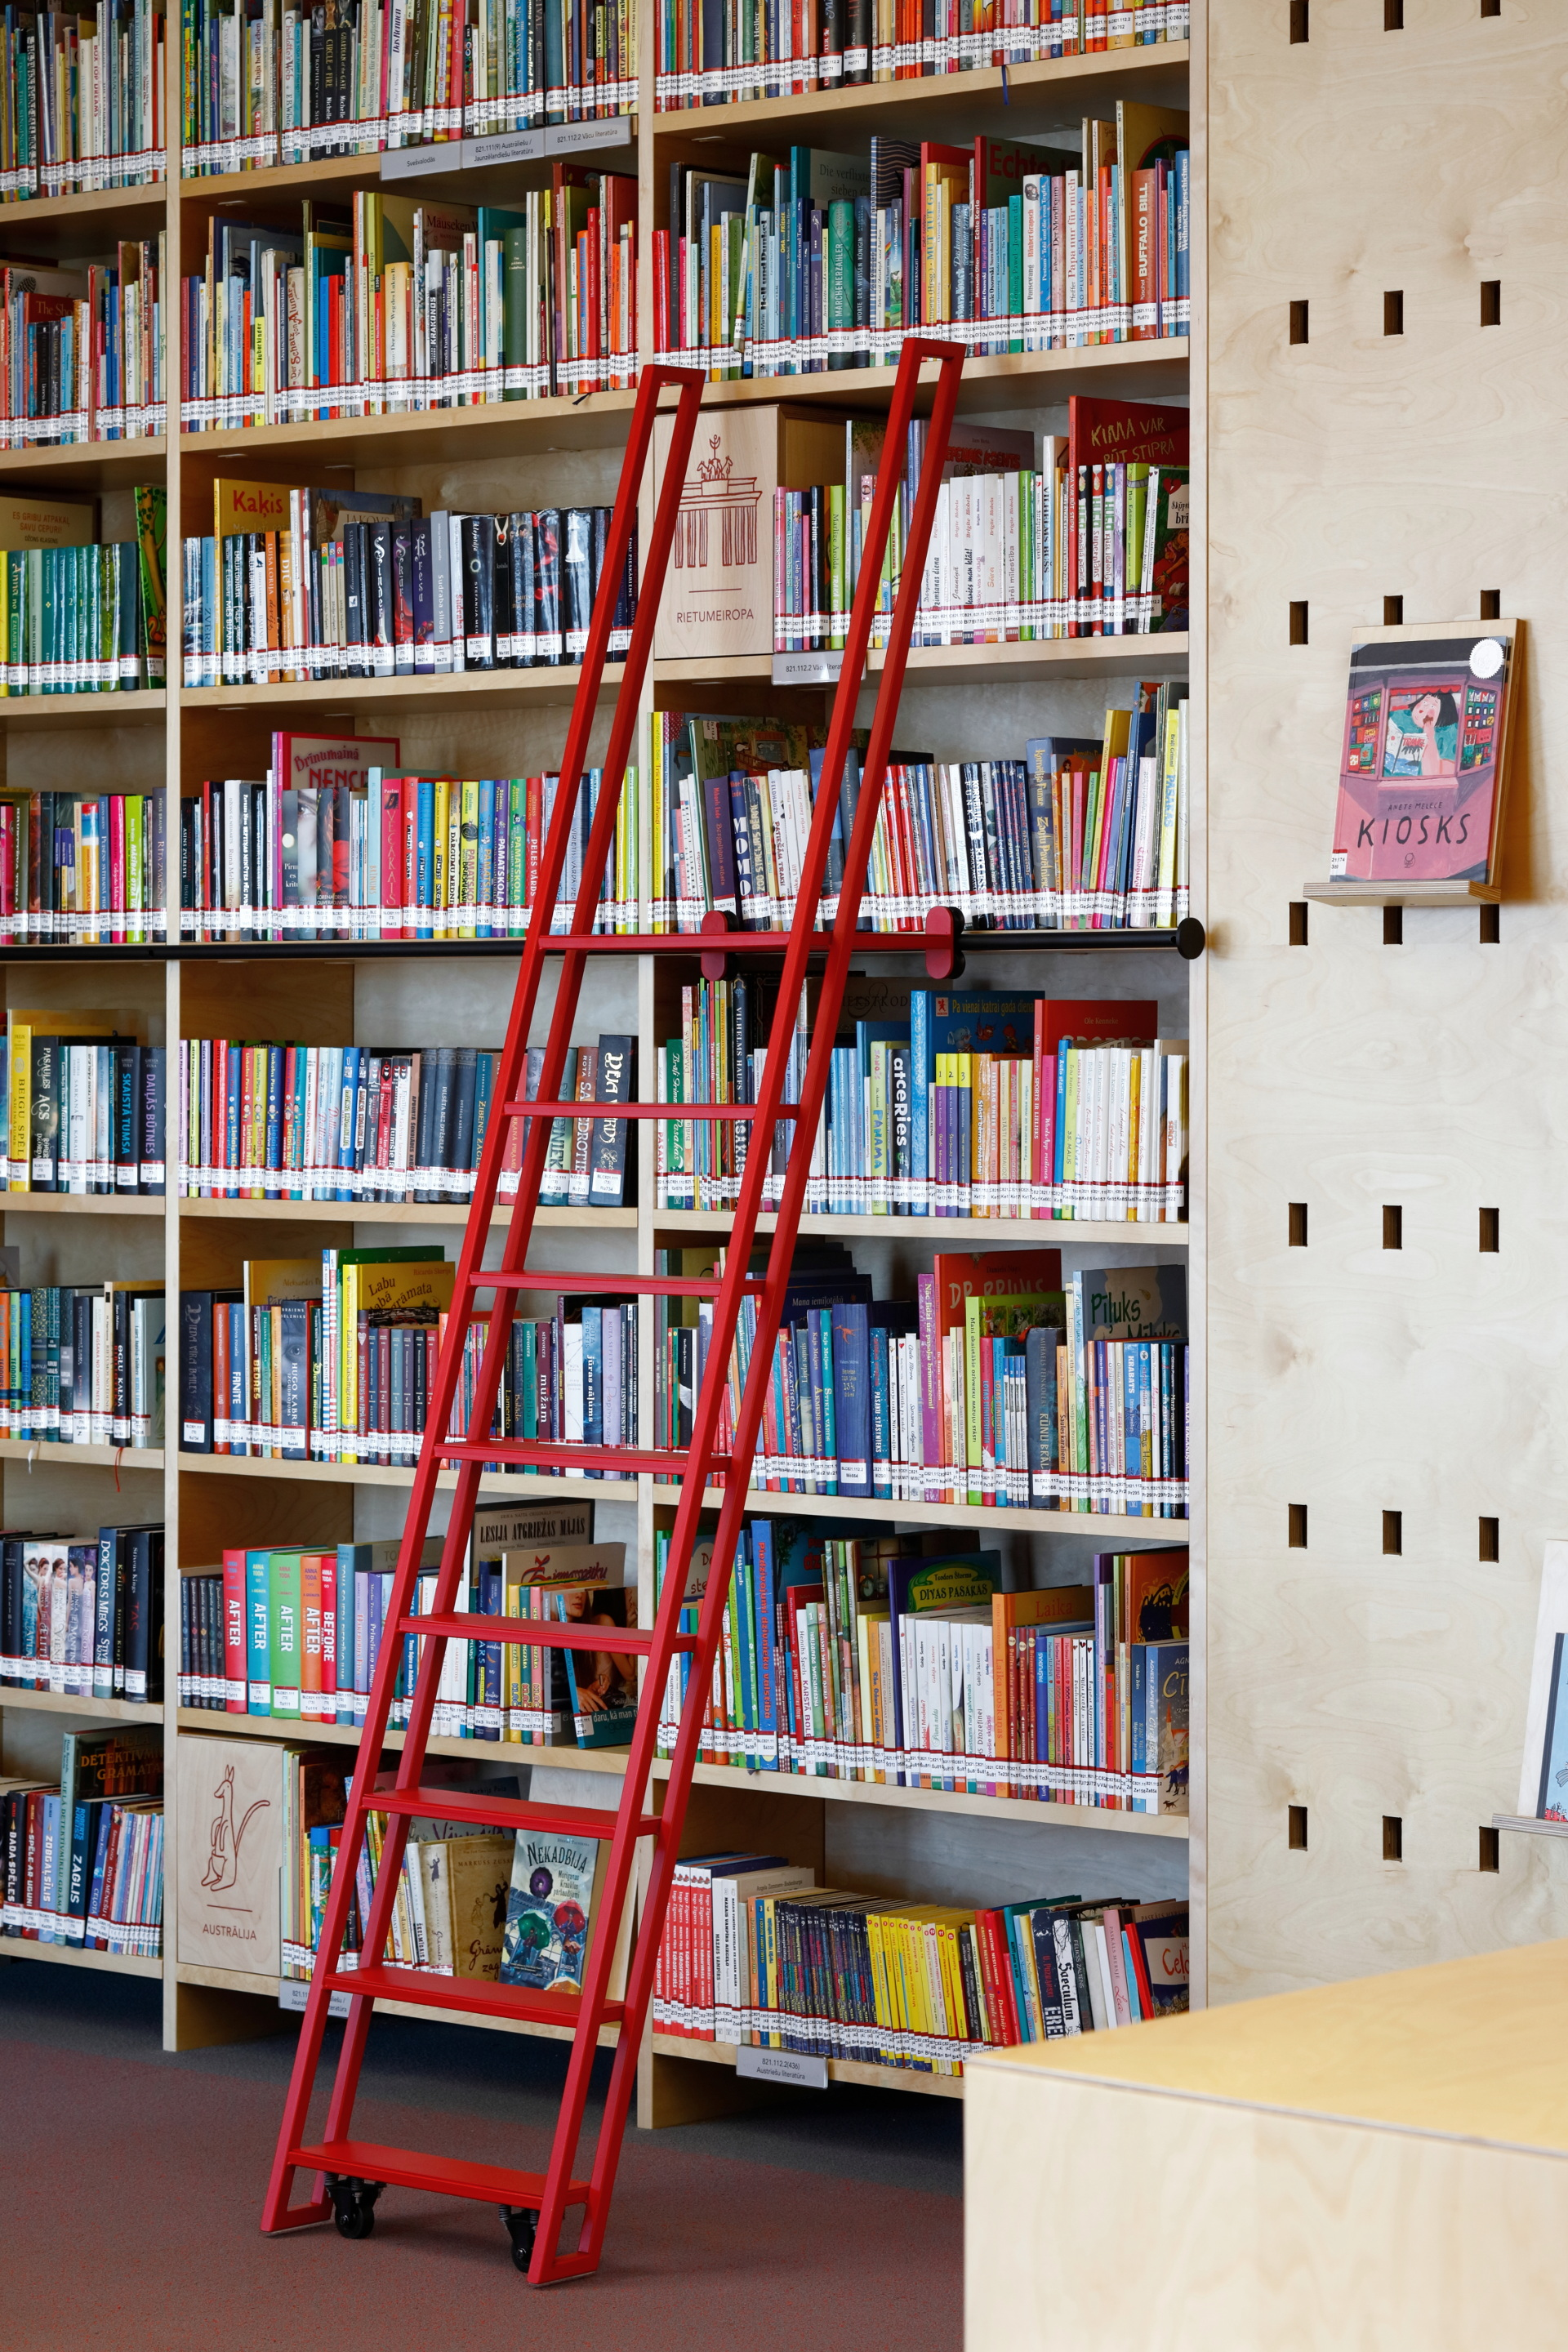 gaiss-041-nll-childrens-library-10-photo-ansis-starks